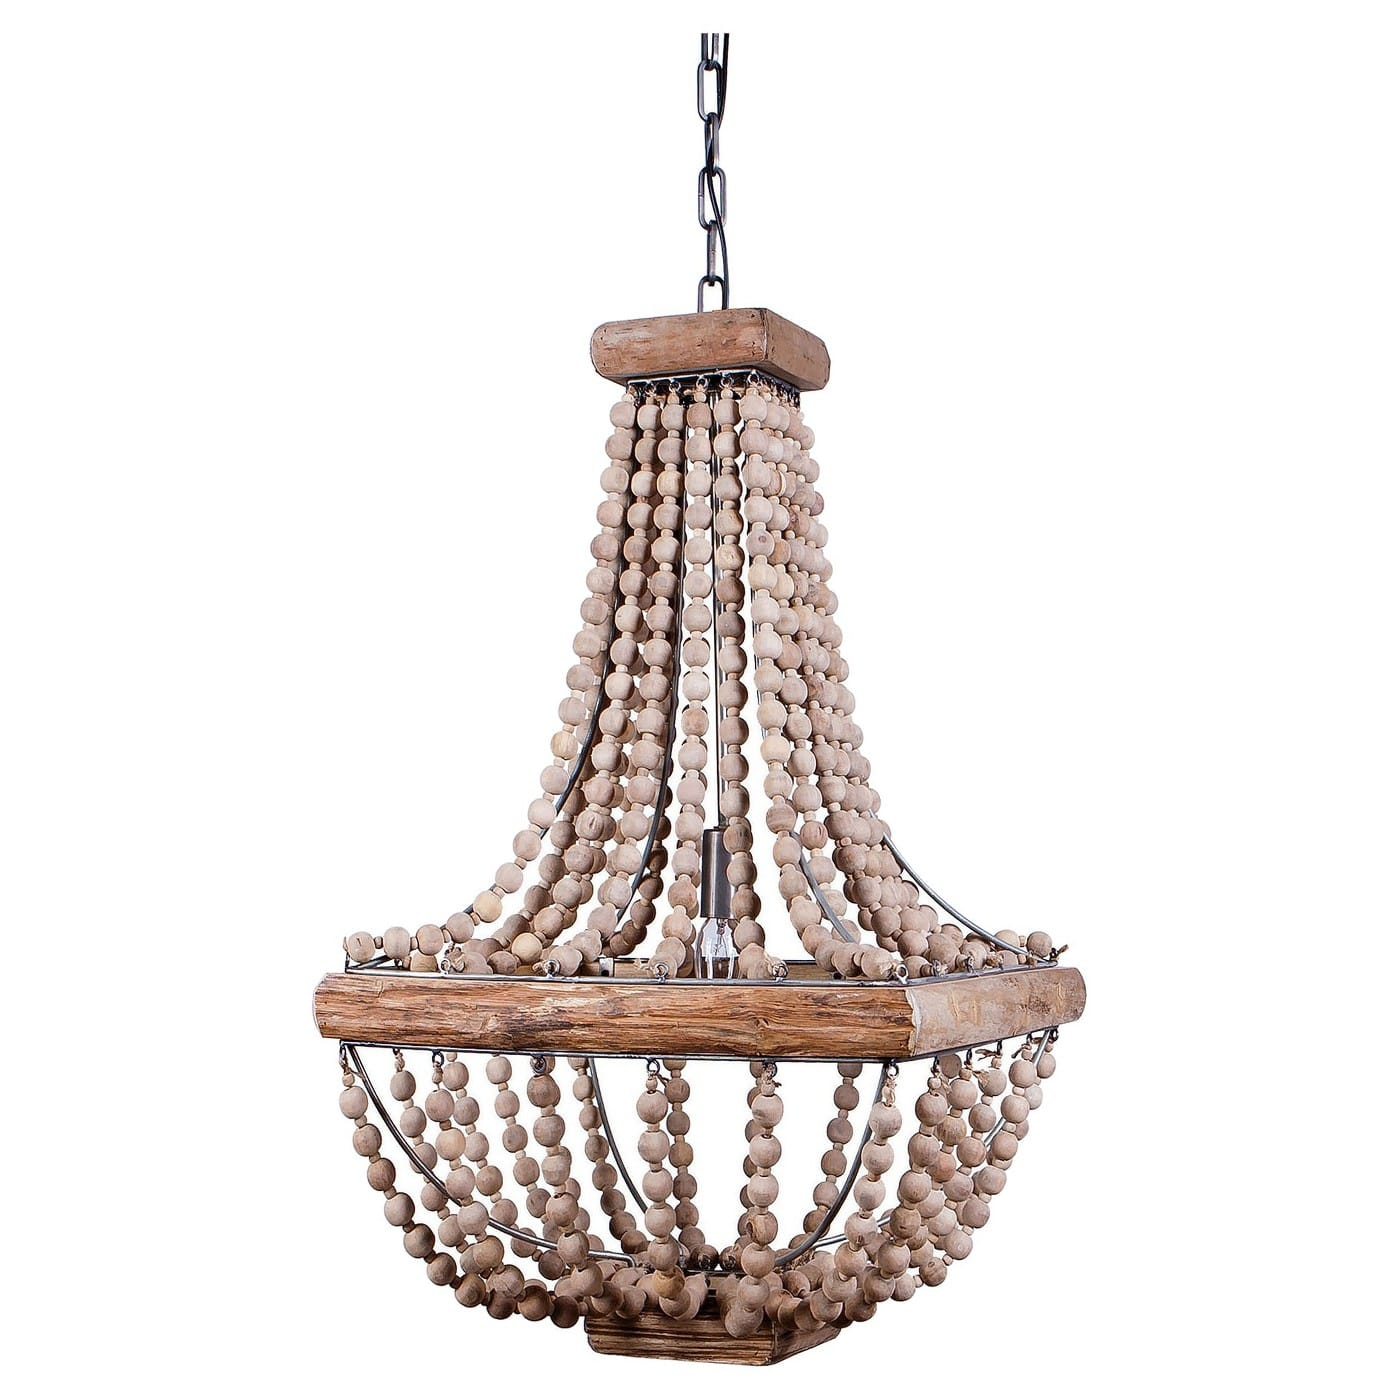 Metal Chandelier with Wood Beads